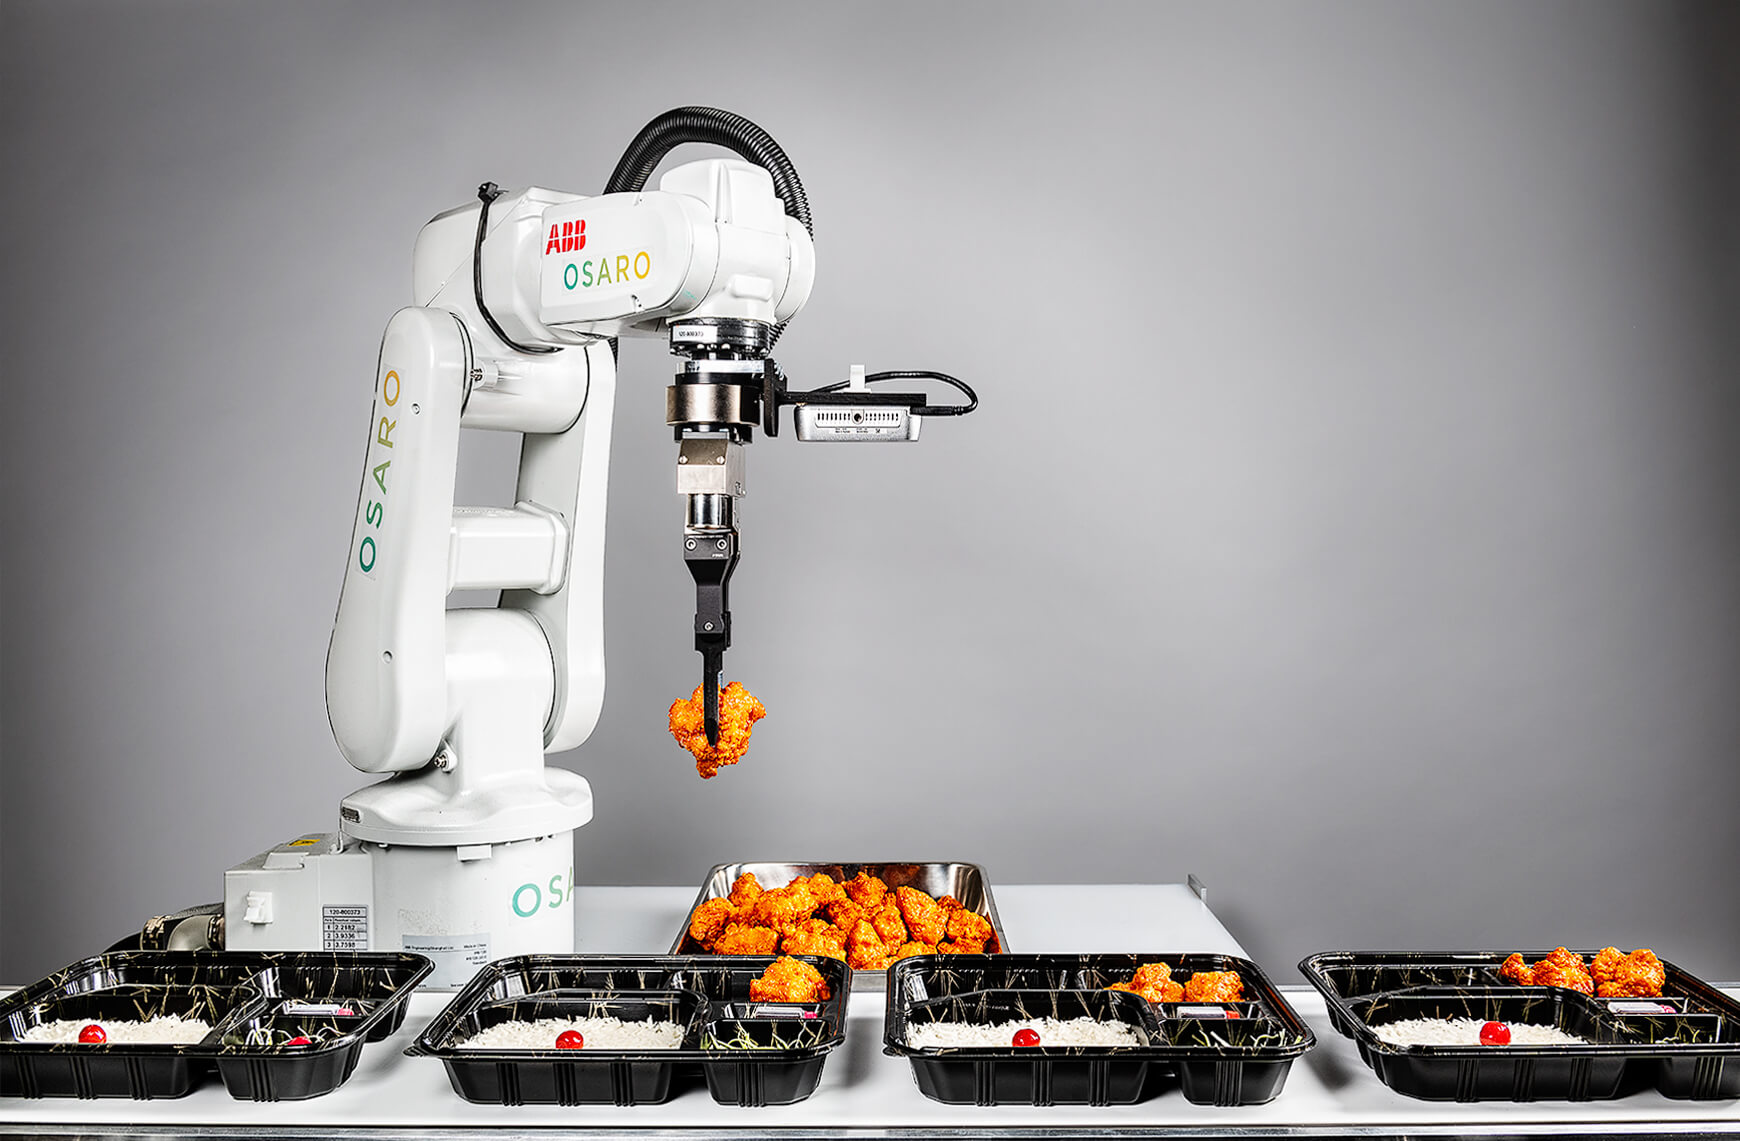 Osaro robotic arm fills up bento boxes with chicken nuggets.